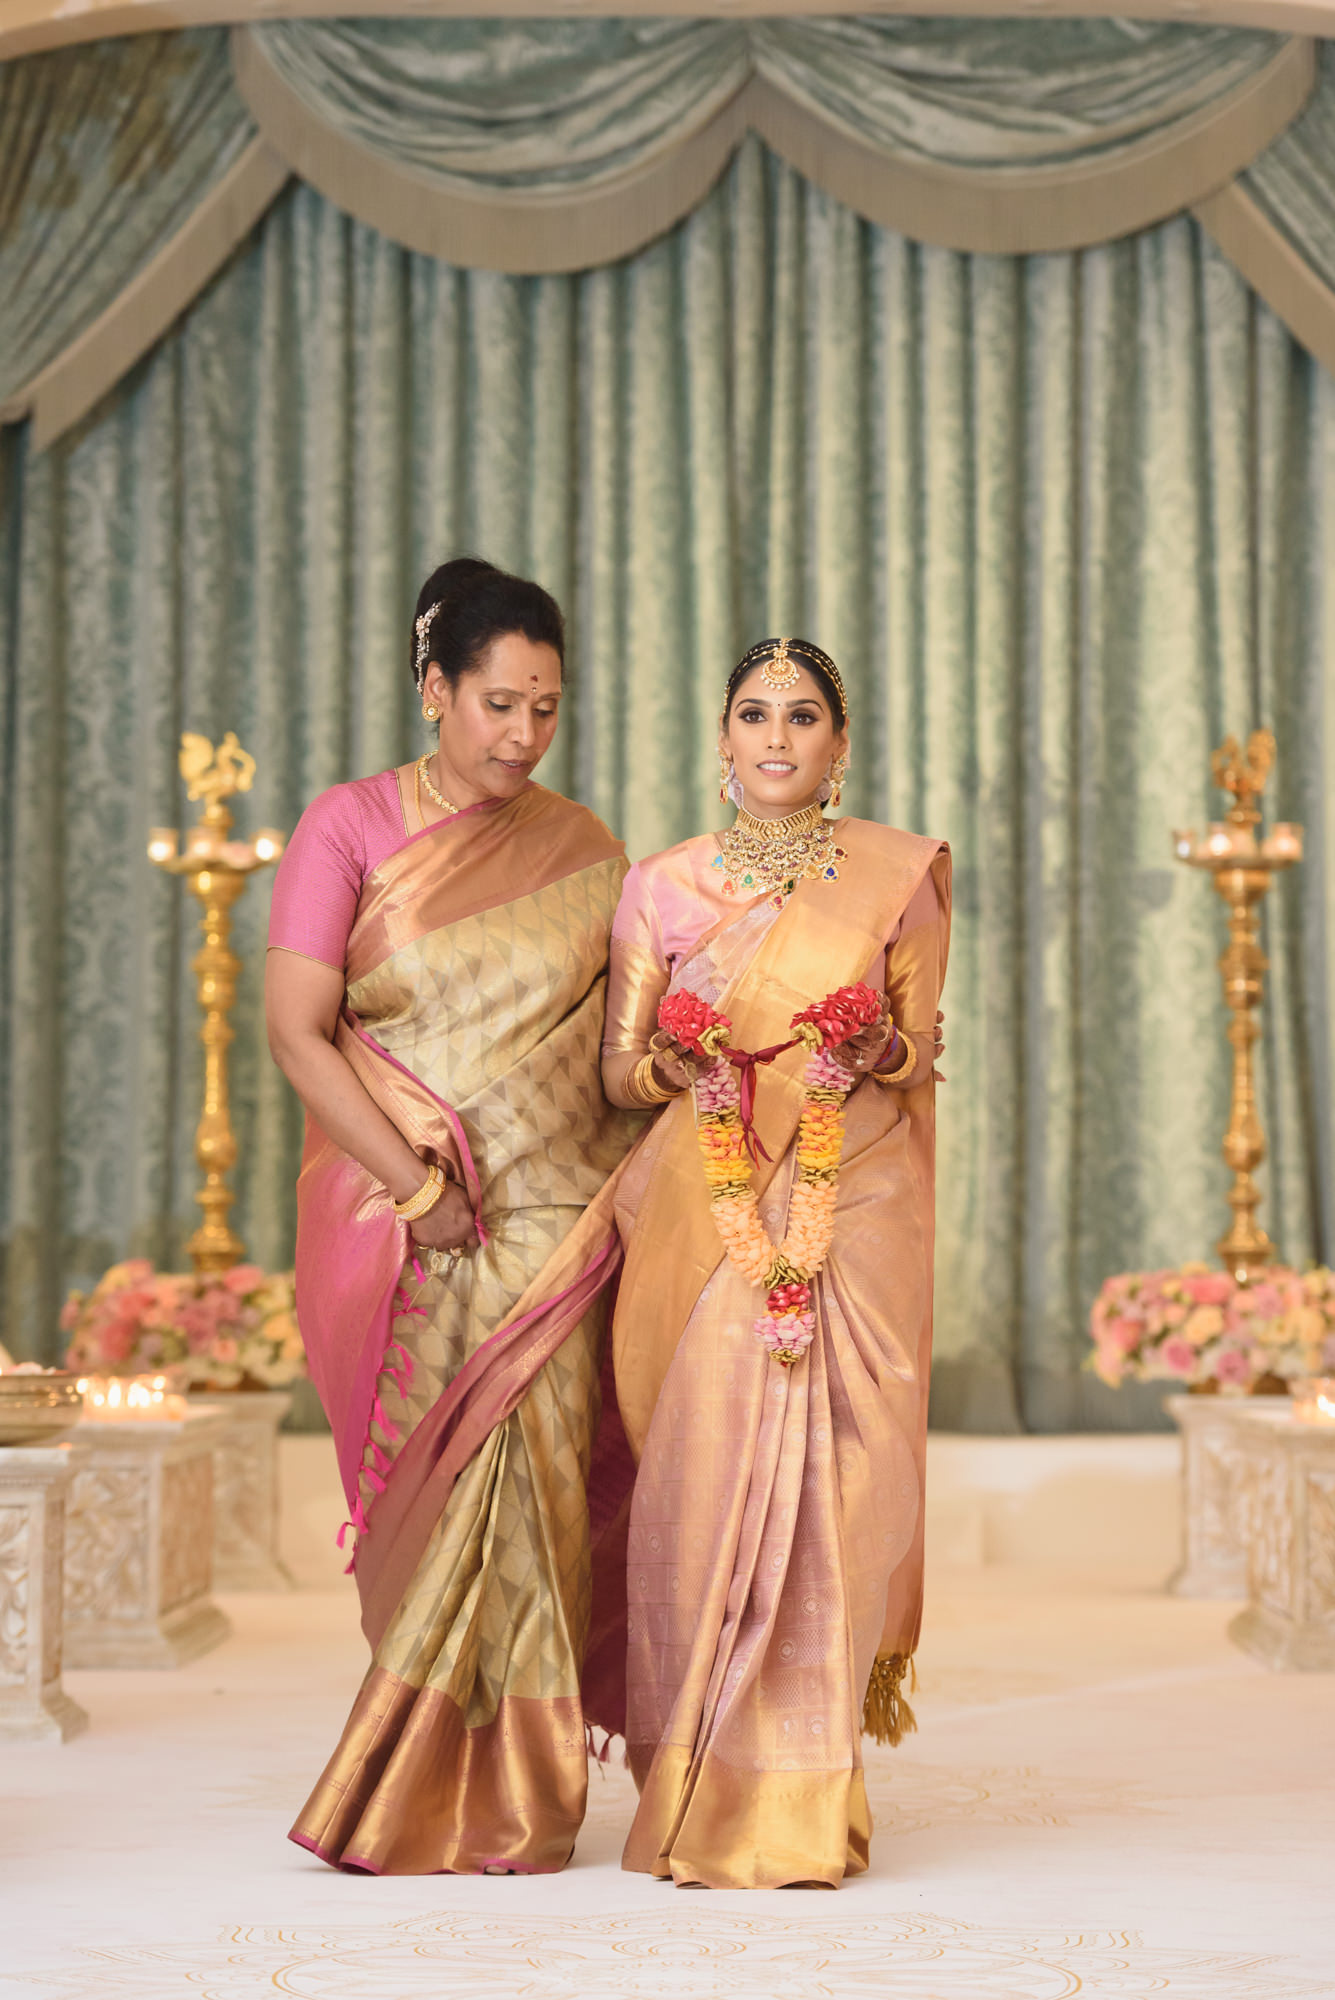 Tamil Gujrati hindu wedding photography photographer london the savoy -53.jpg